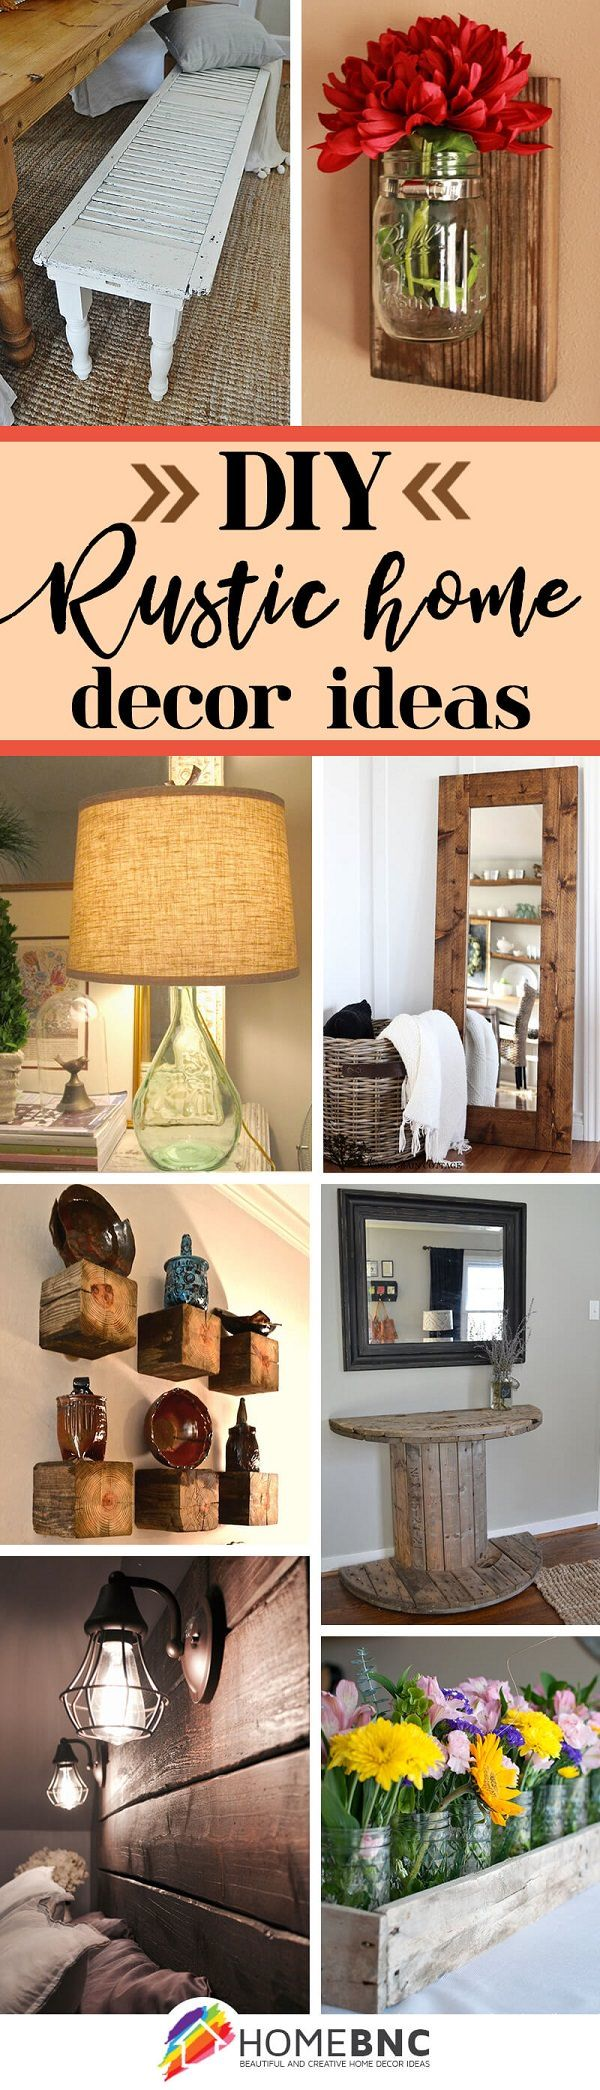 39 DIY Rustic Home Decor Ideas You Can Make Yourself